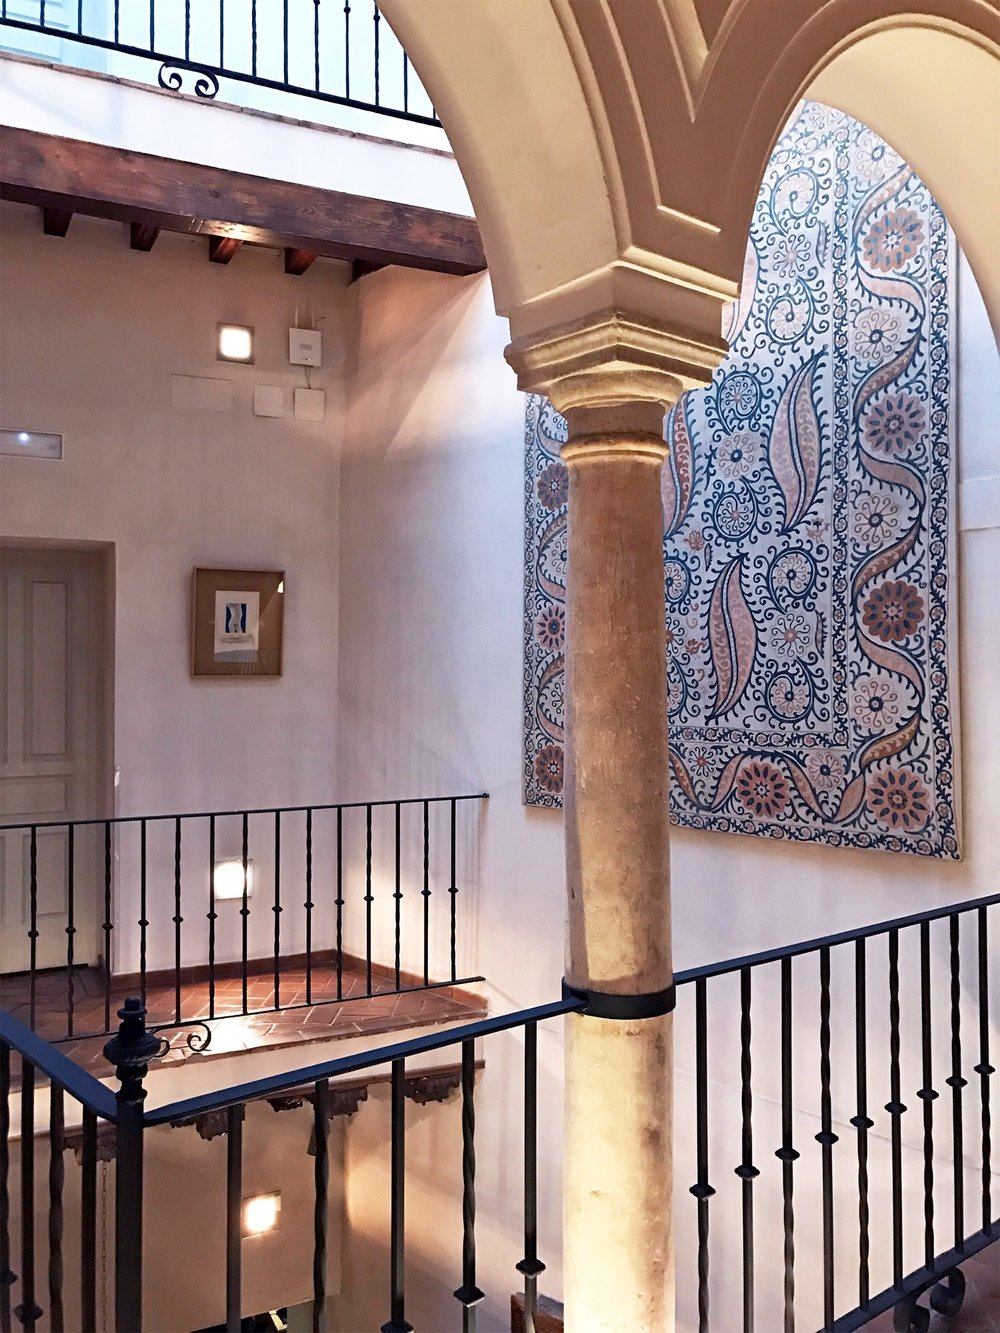 Corral del Rey hotel Seville Spain architecture.jpg